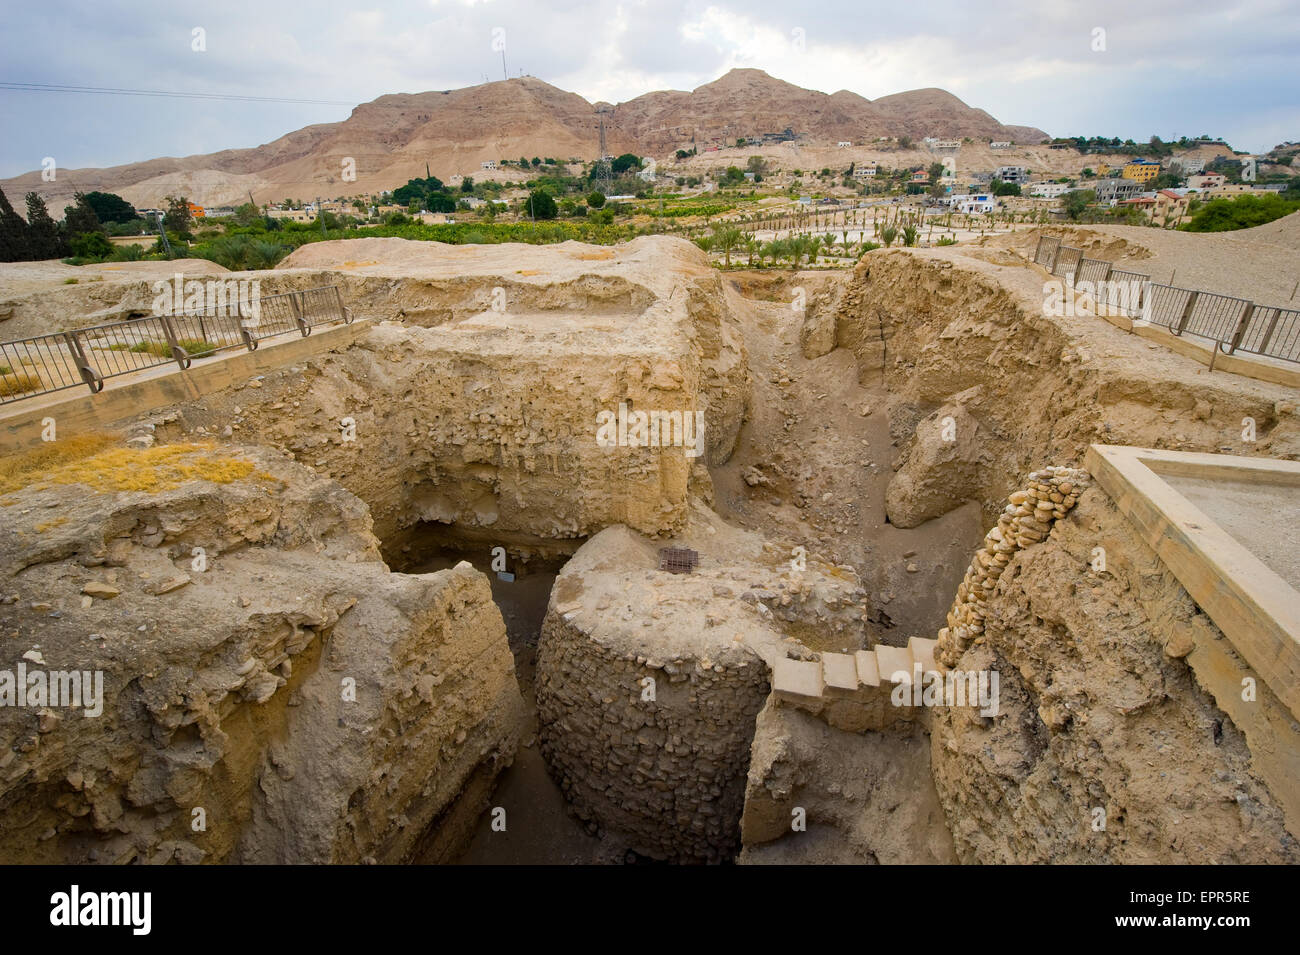 Old ruins and remains in Tell es-Sultan better known as Jericho the oldest city in the world, with the mount of - Stock Image